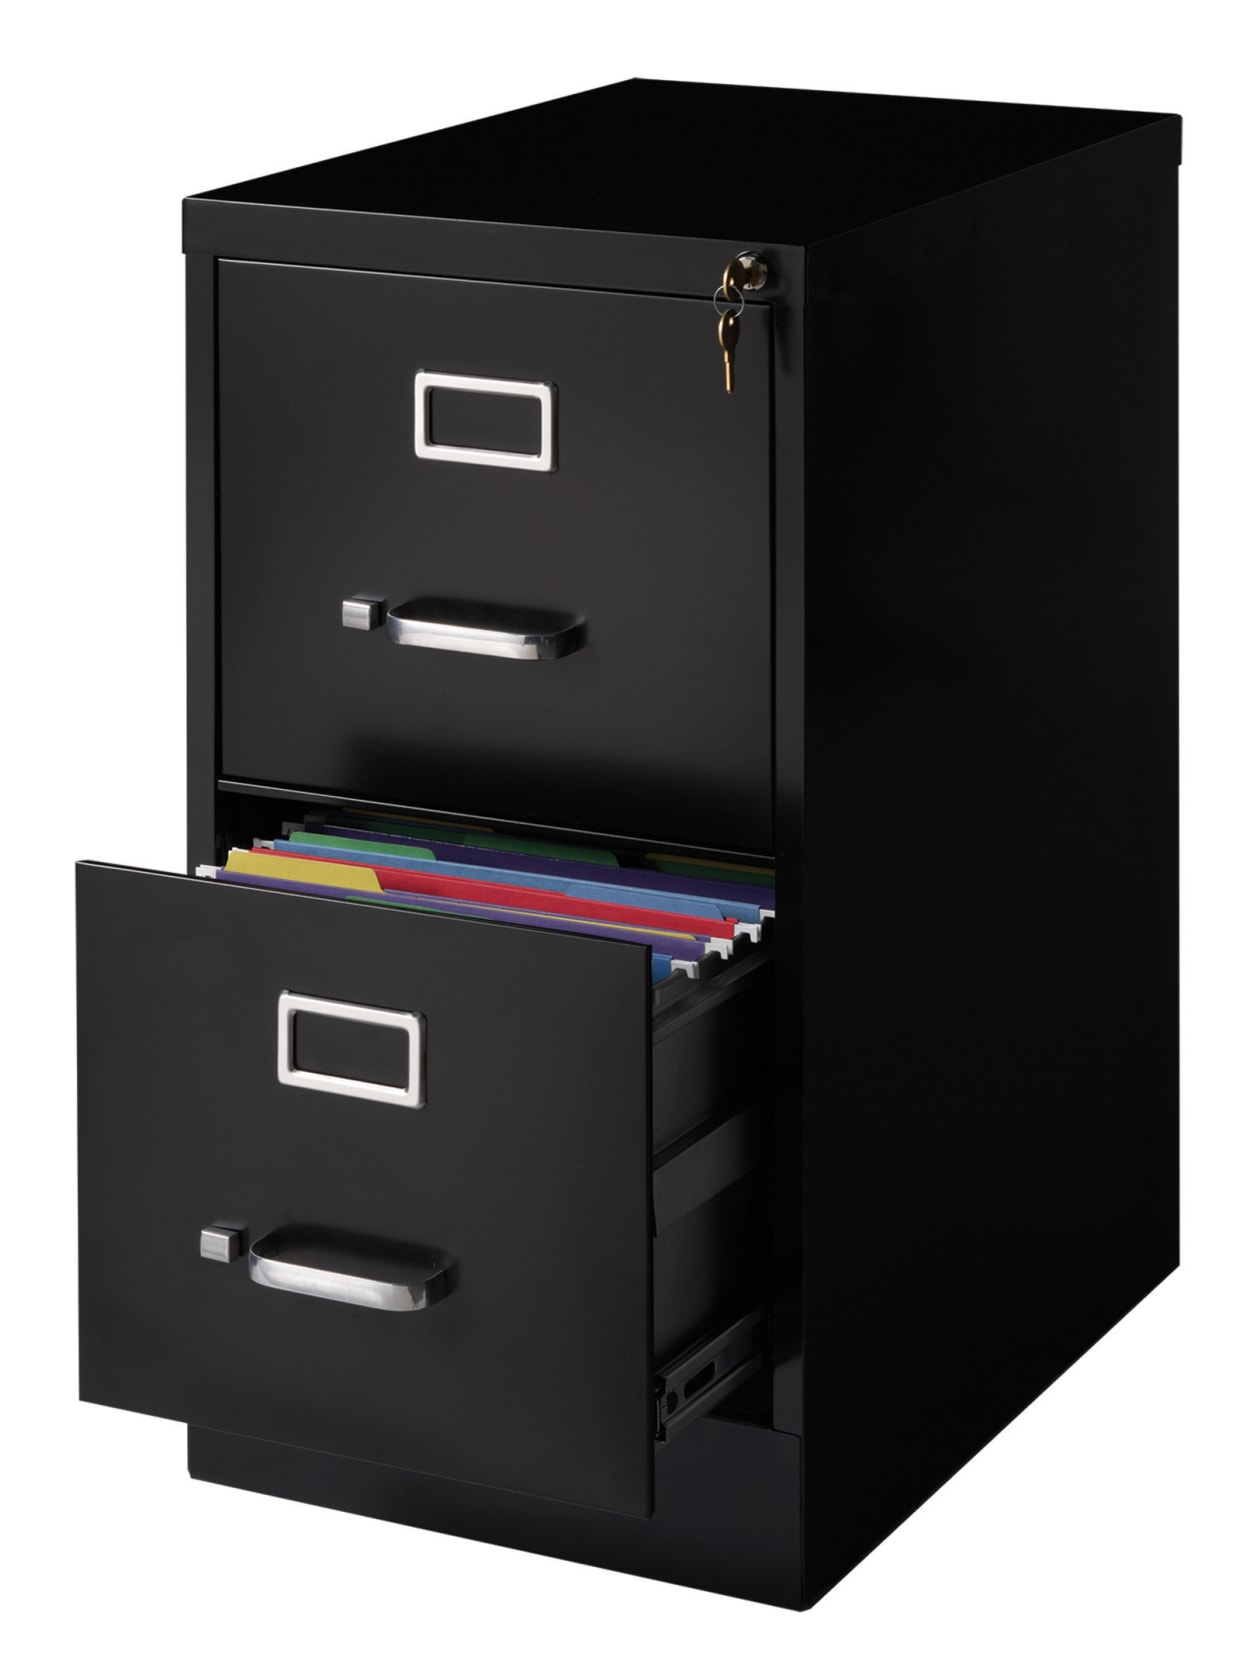 Mocha 2 Drawers Realspace Premium Letter-Size Vertical File Cabinet